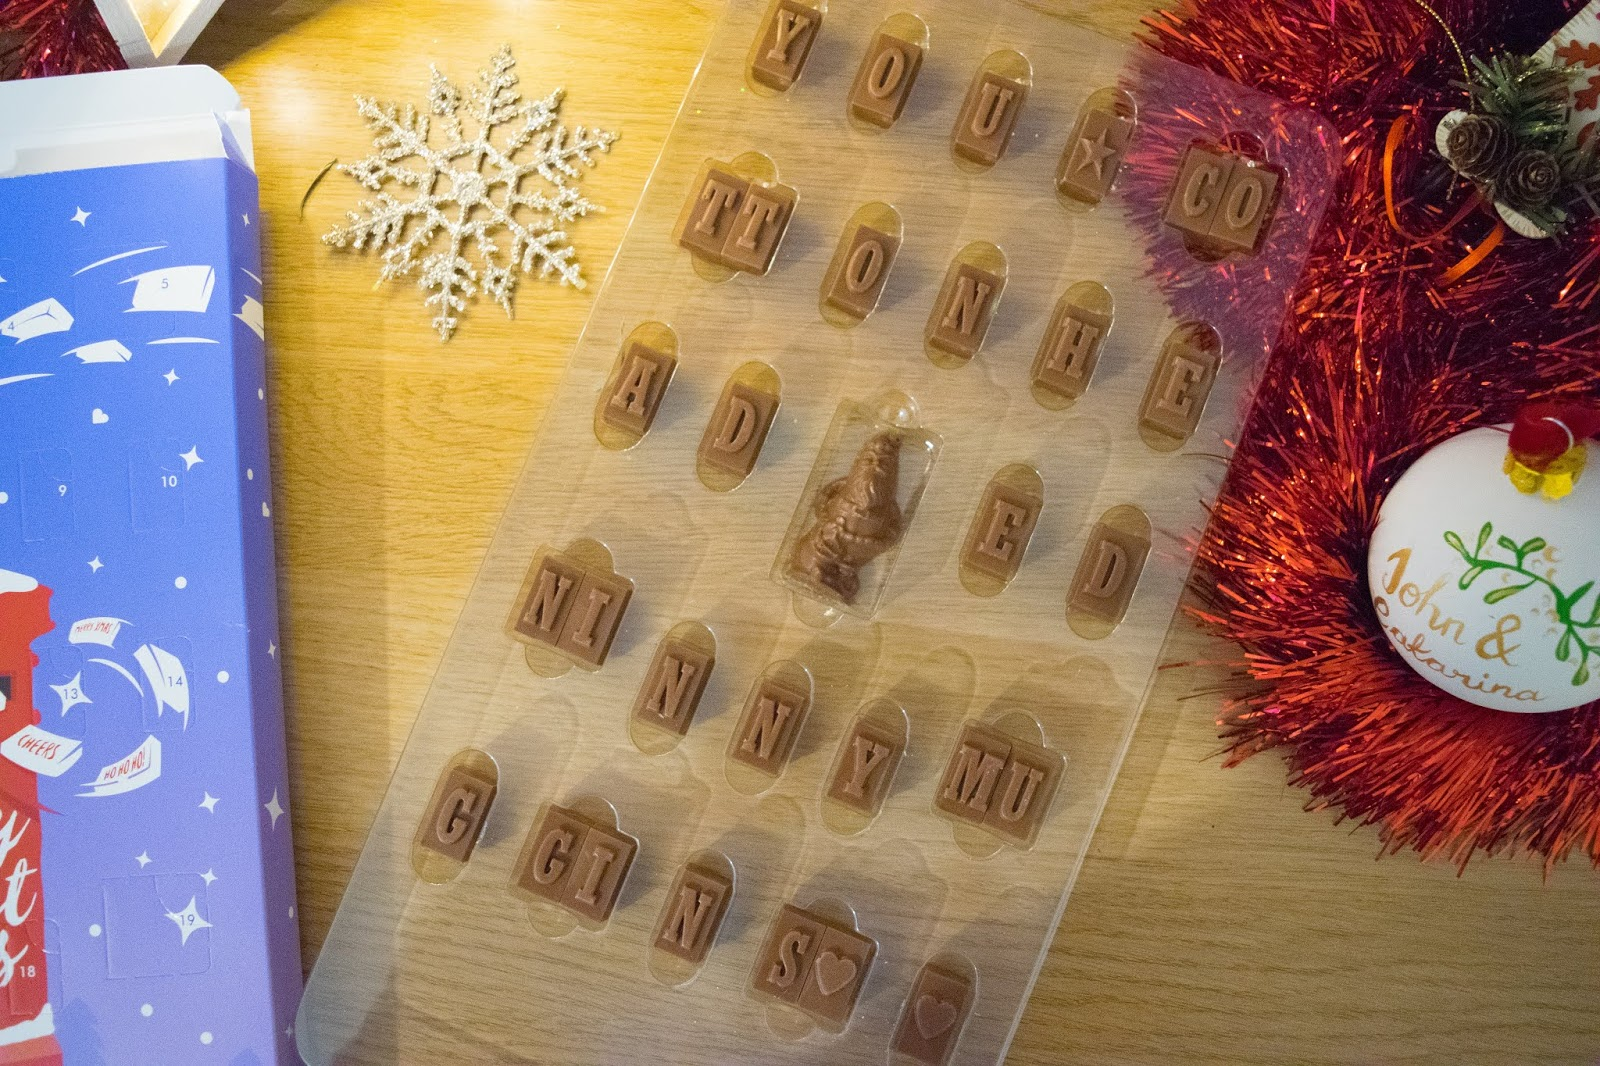 A preview of the chocolate in the plastic tray inside the advent calendar with the personalised secret message: You Cotton-headed Ninny-muggins.